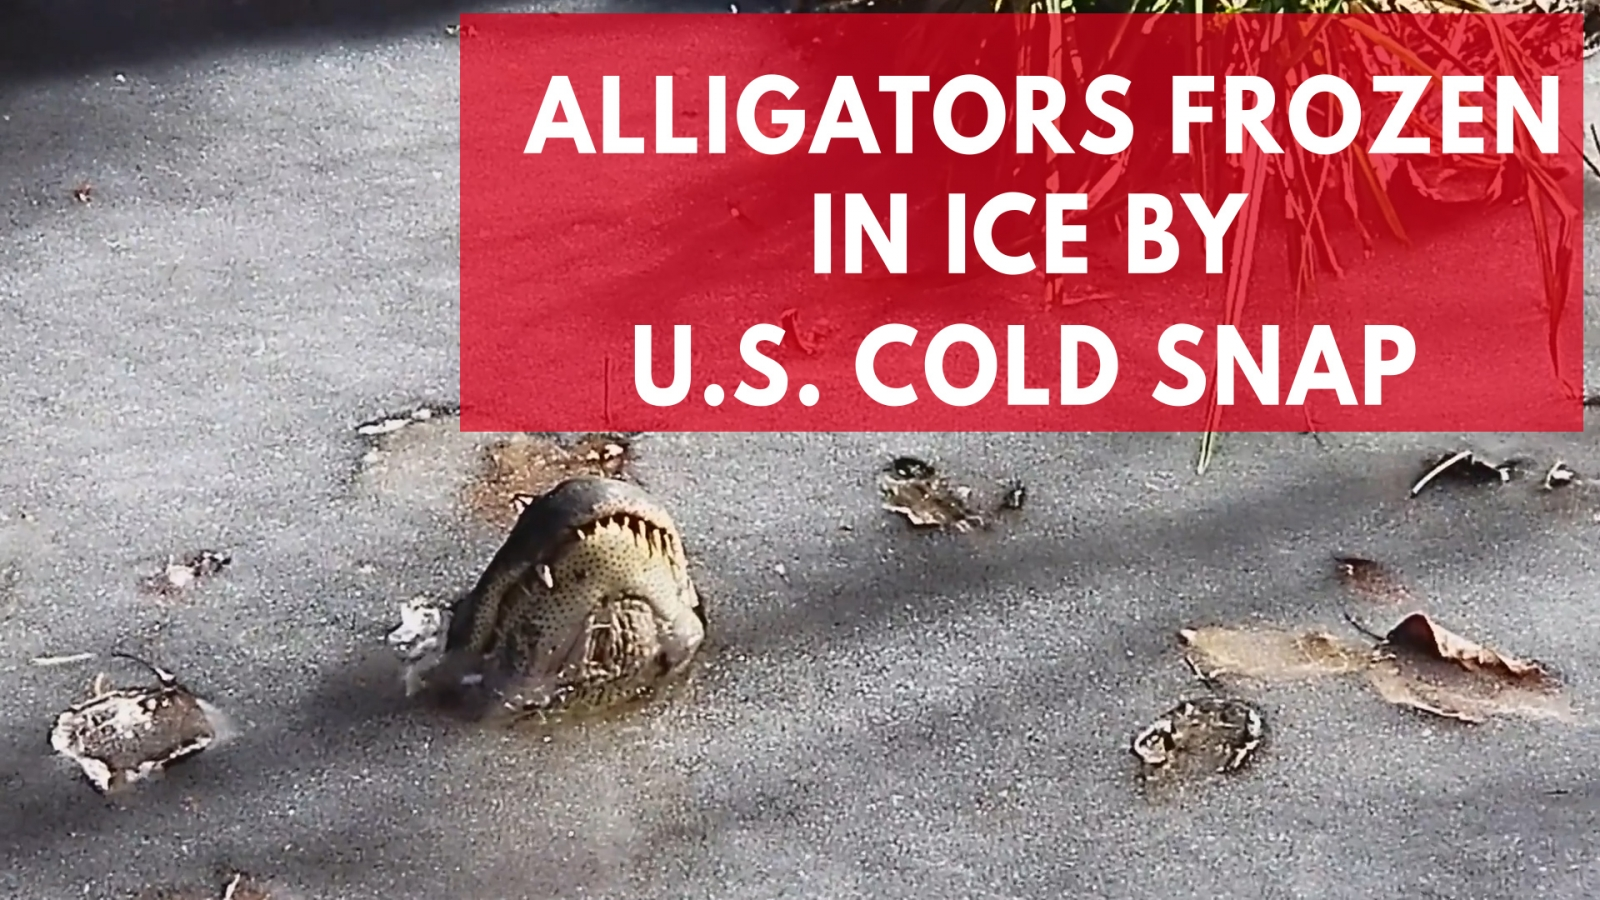 alligators-frozen-in-ice-by-u-s-cold-snap